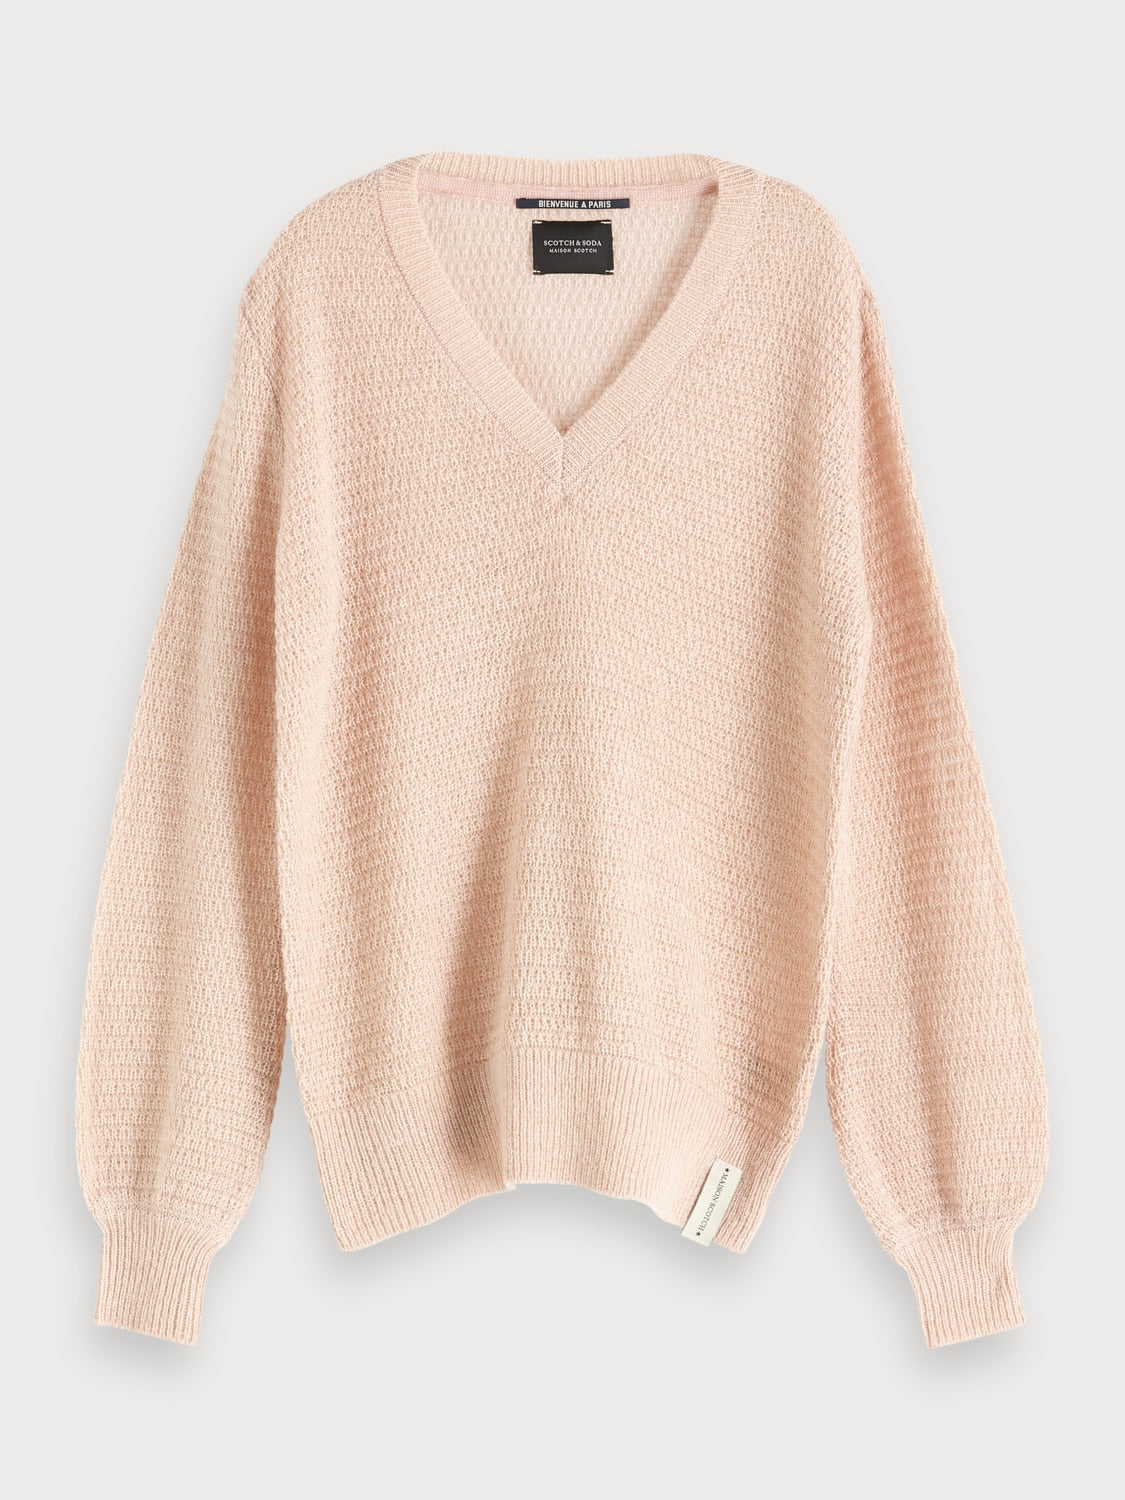 Scotch & Soda Bienvenue Wool Blend V Neck Pullover